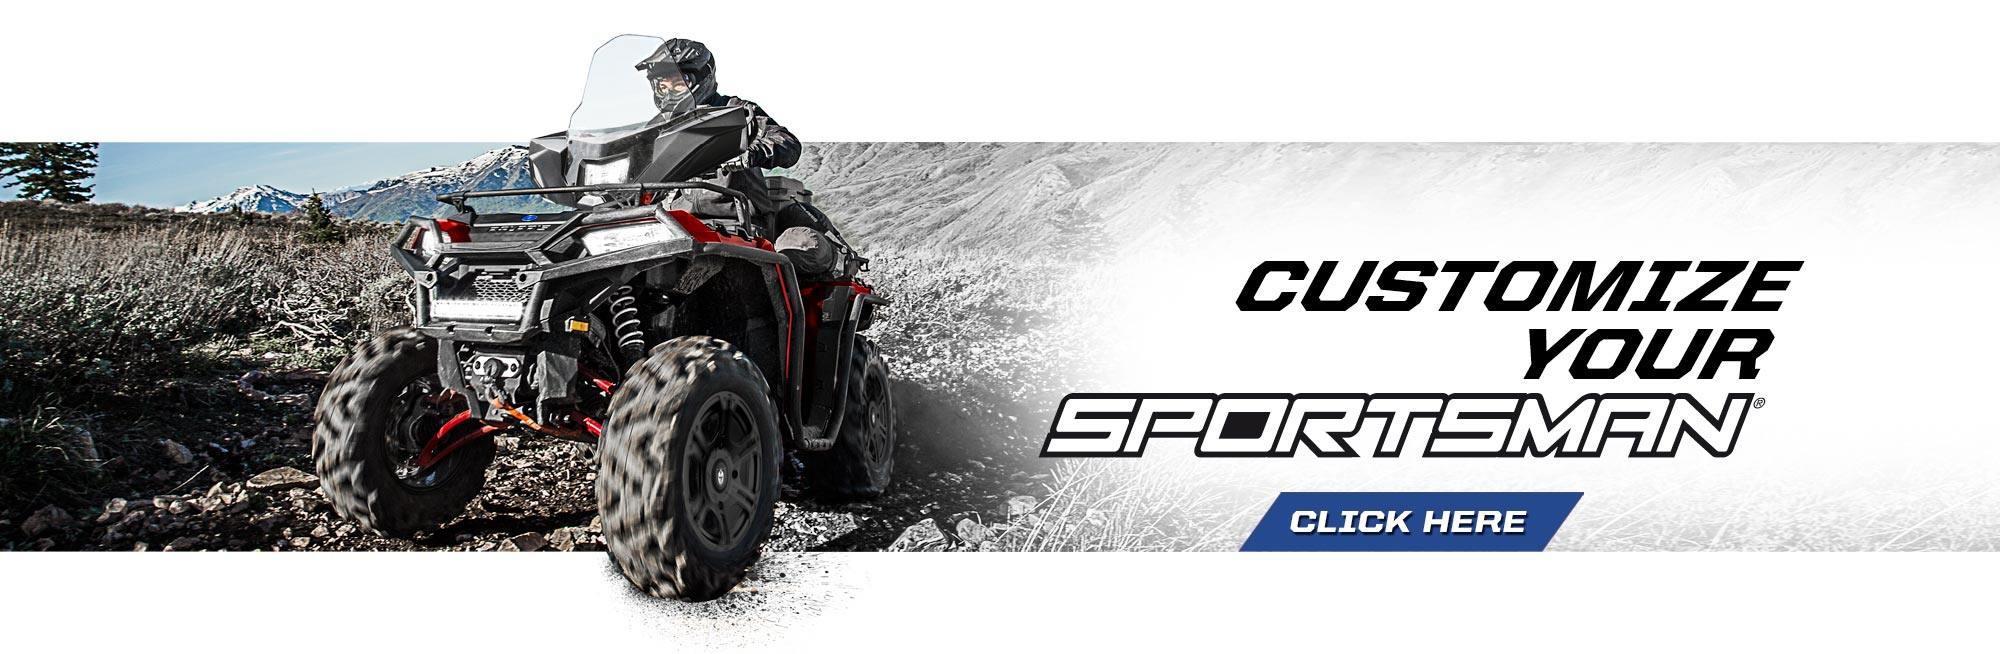 Customize your Sportsman